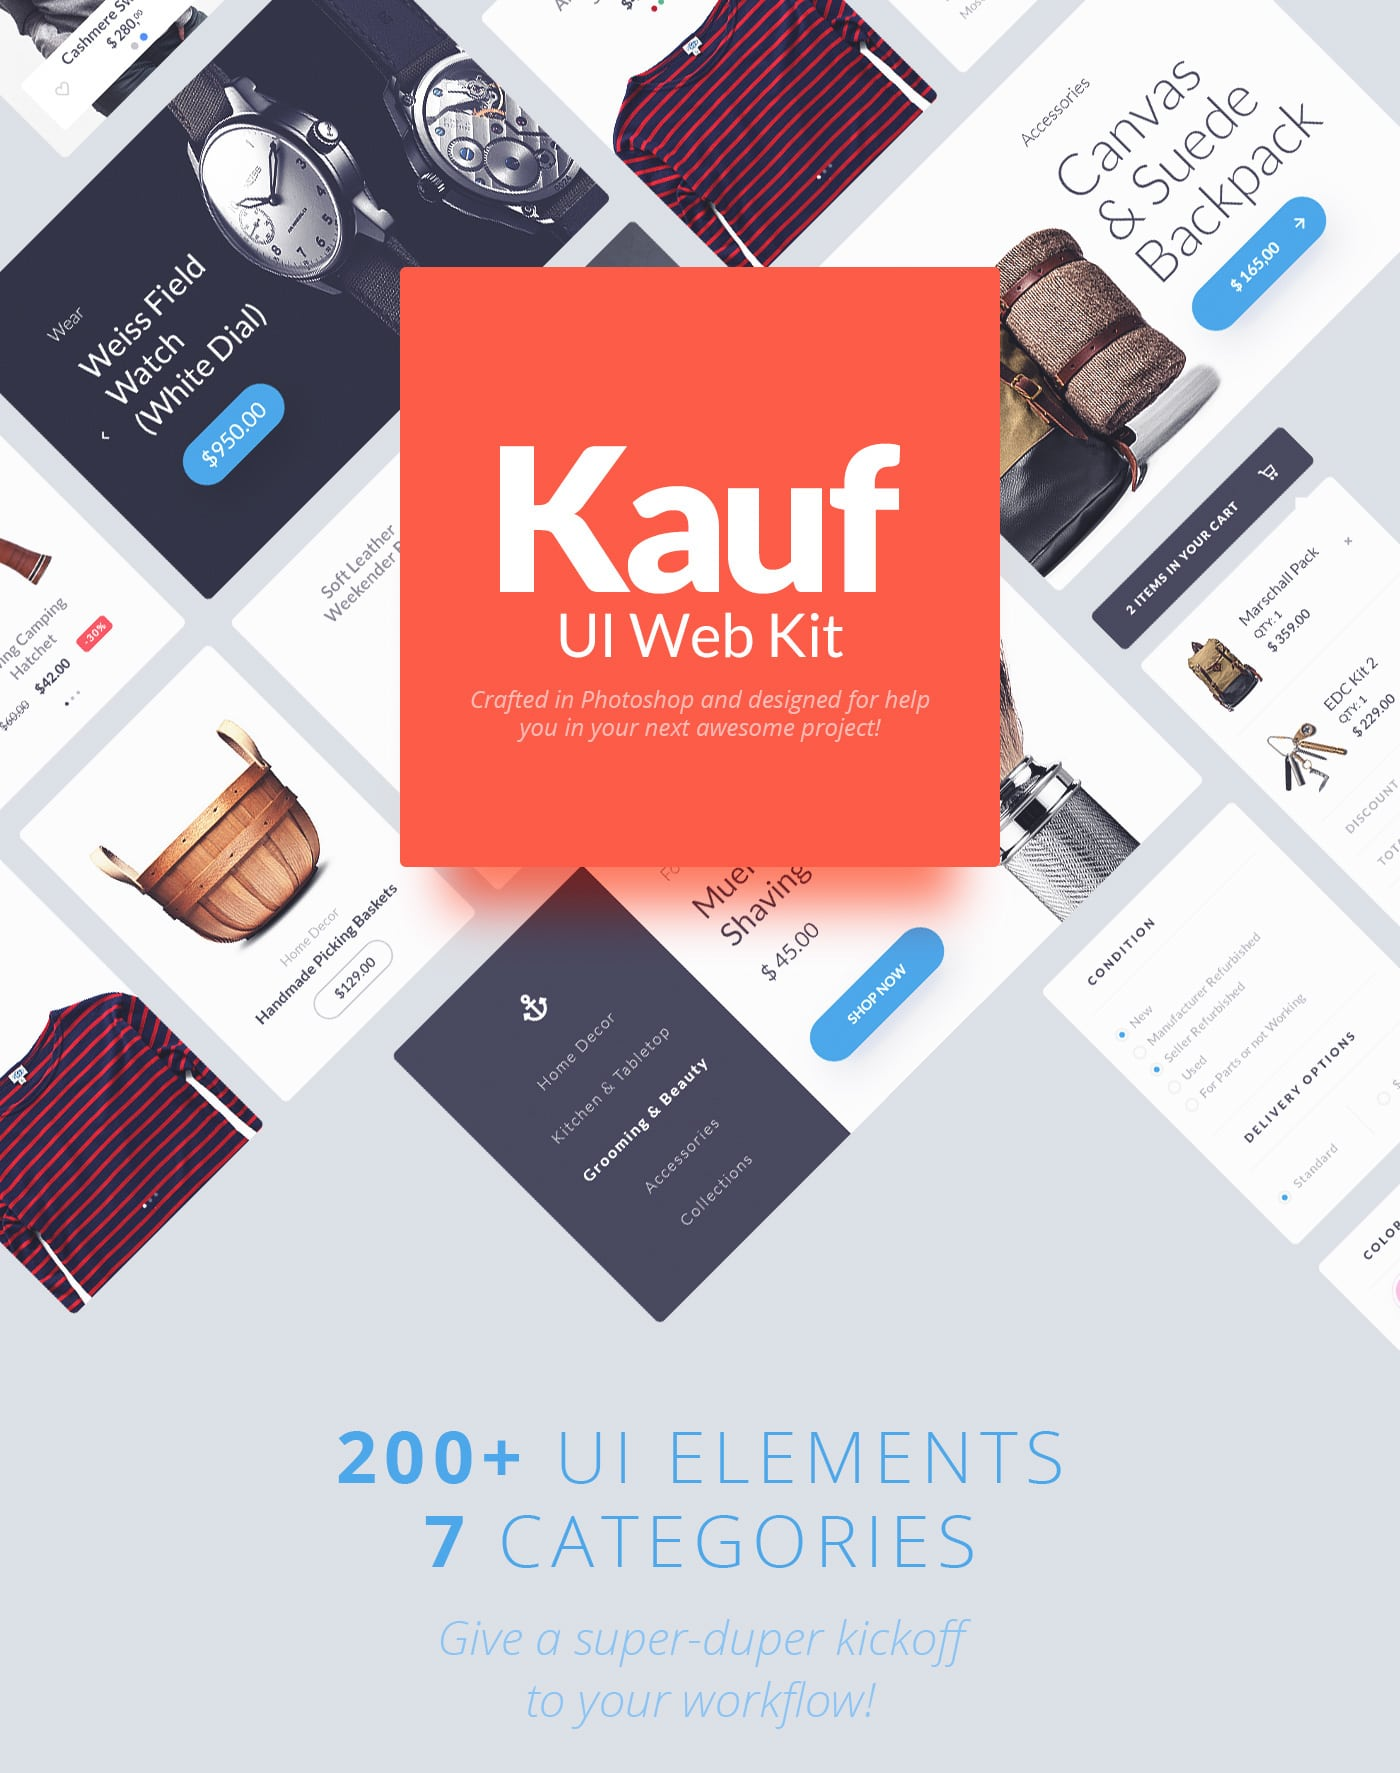 Kauf UI Web Kit - PSD Resource - 200 ui elements - 7 categories